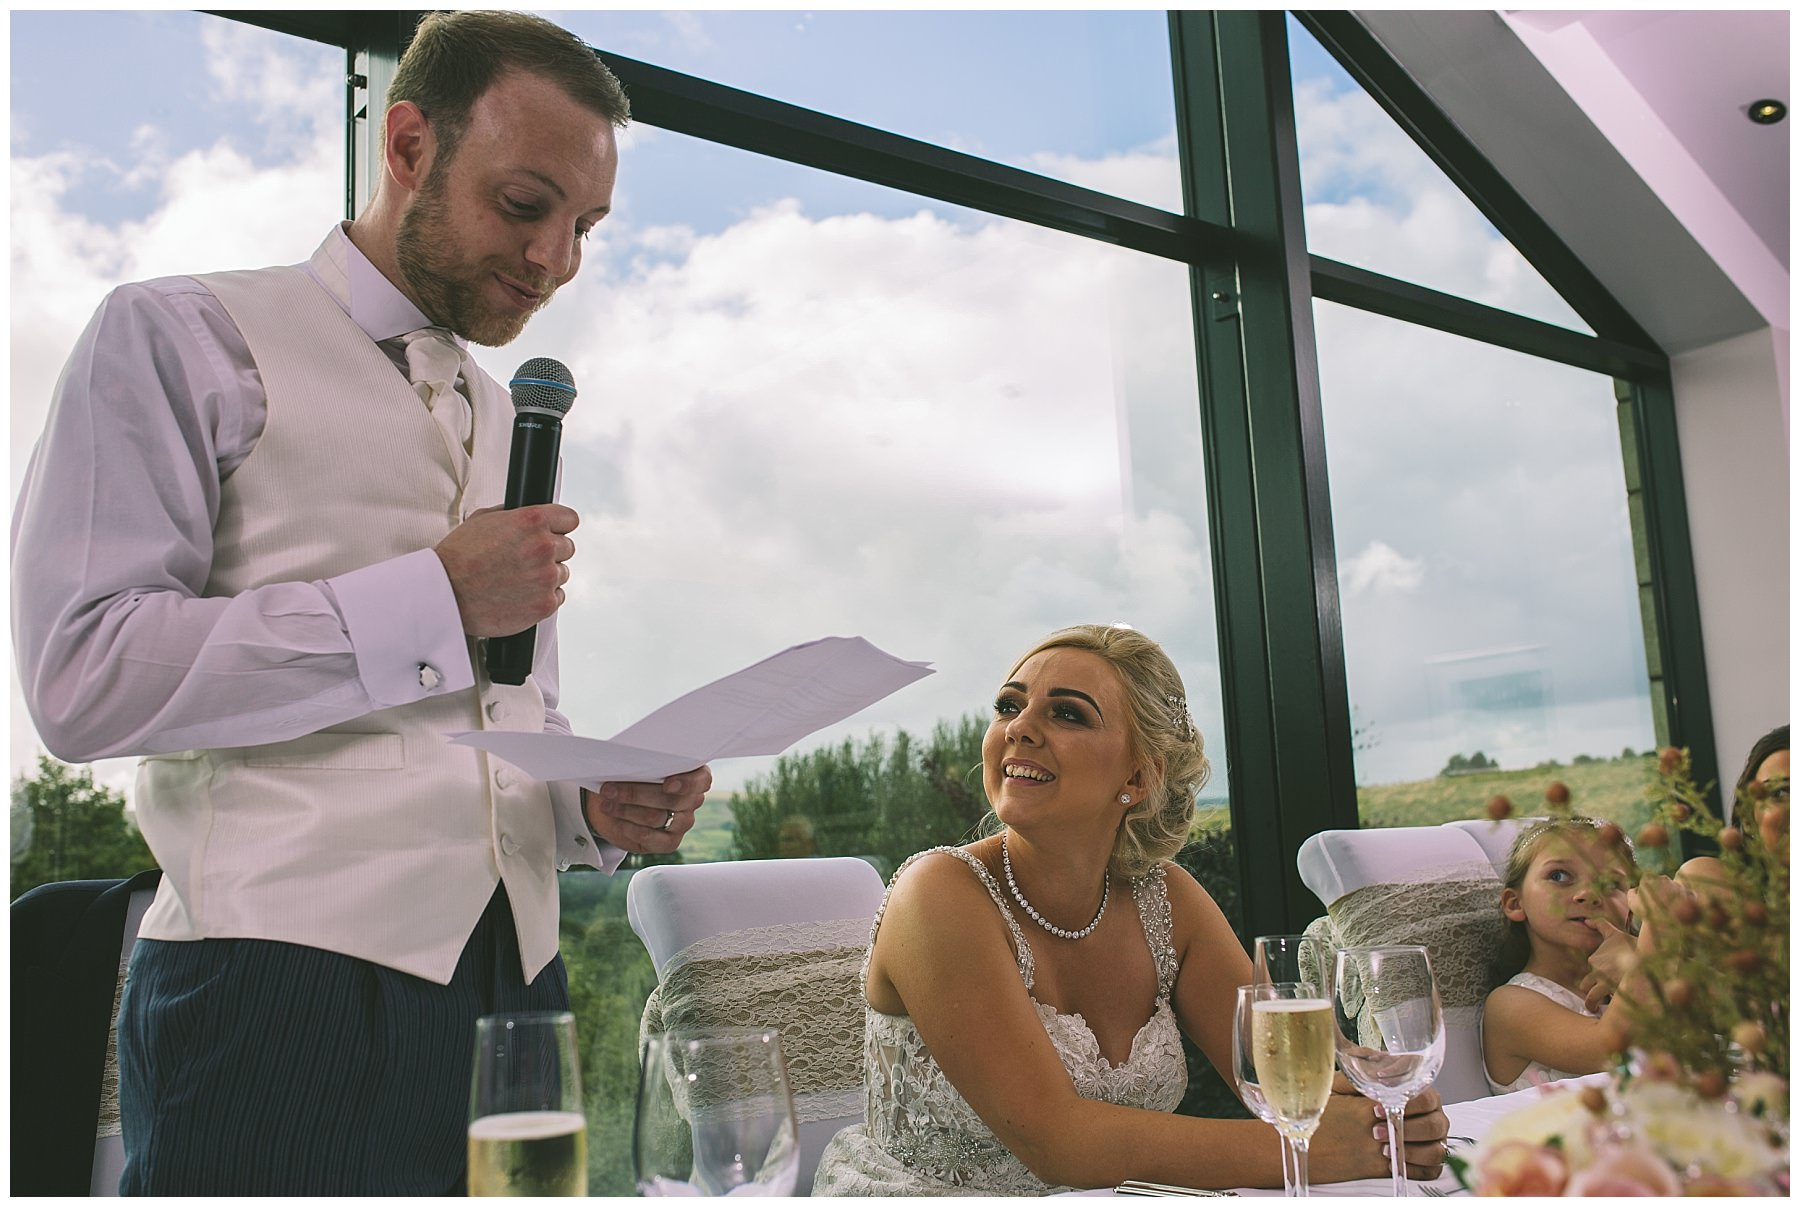 Bride looks at her new husband as he gives a speech